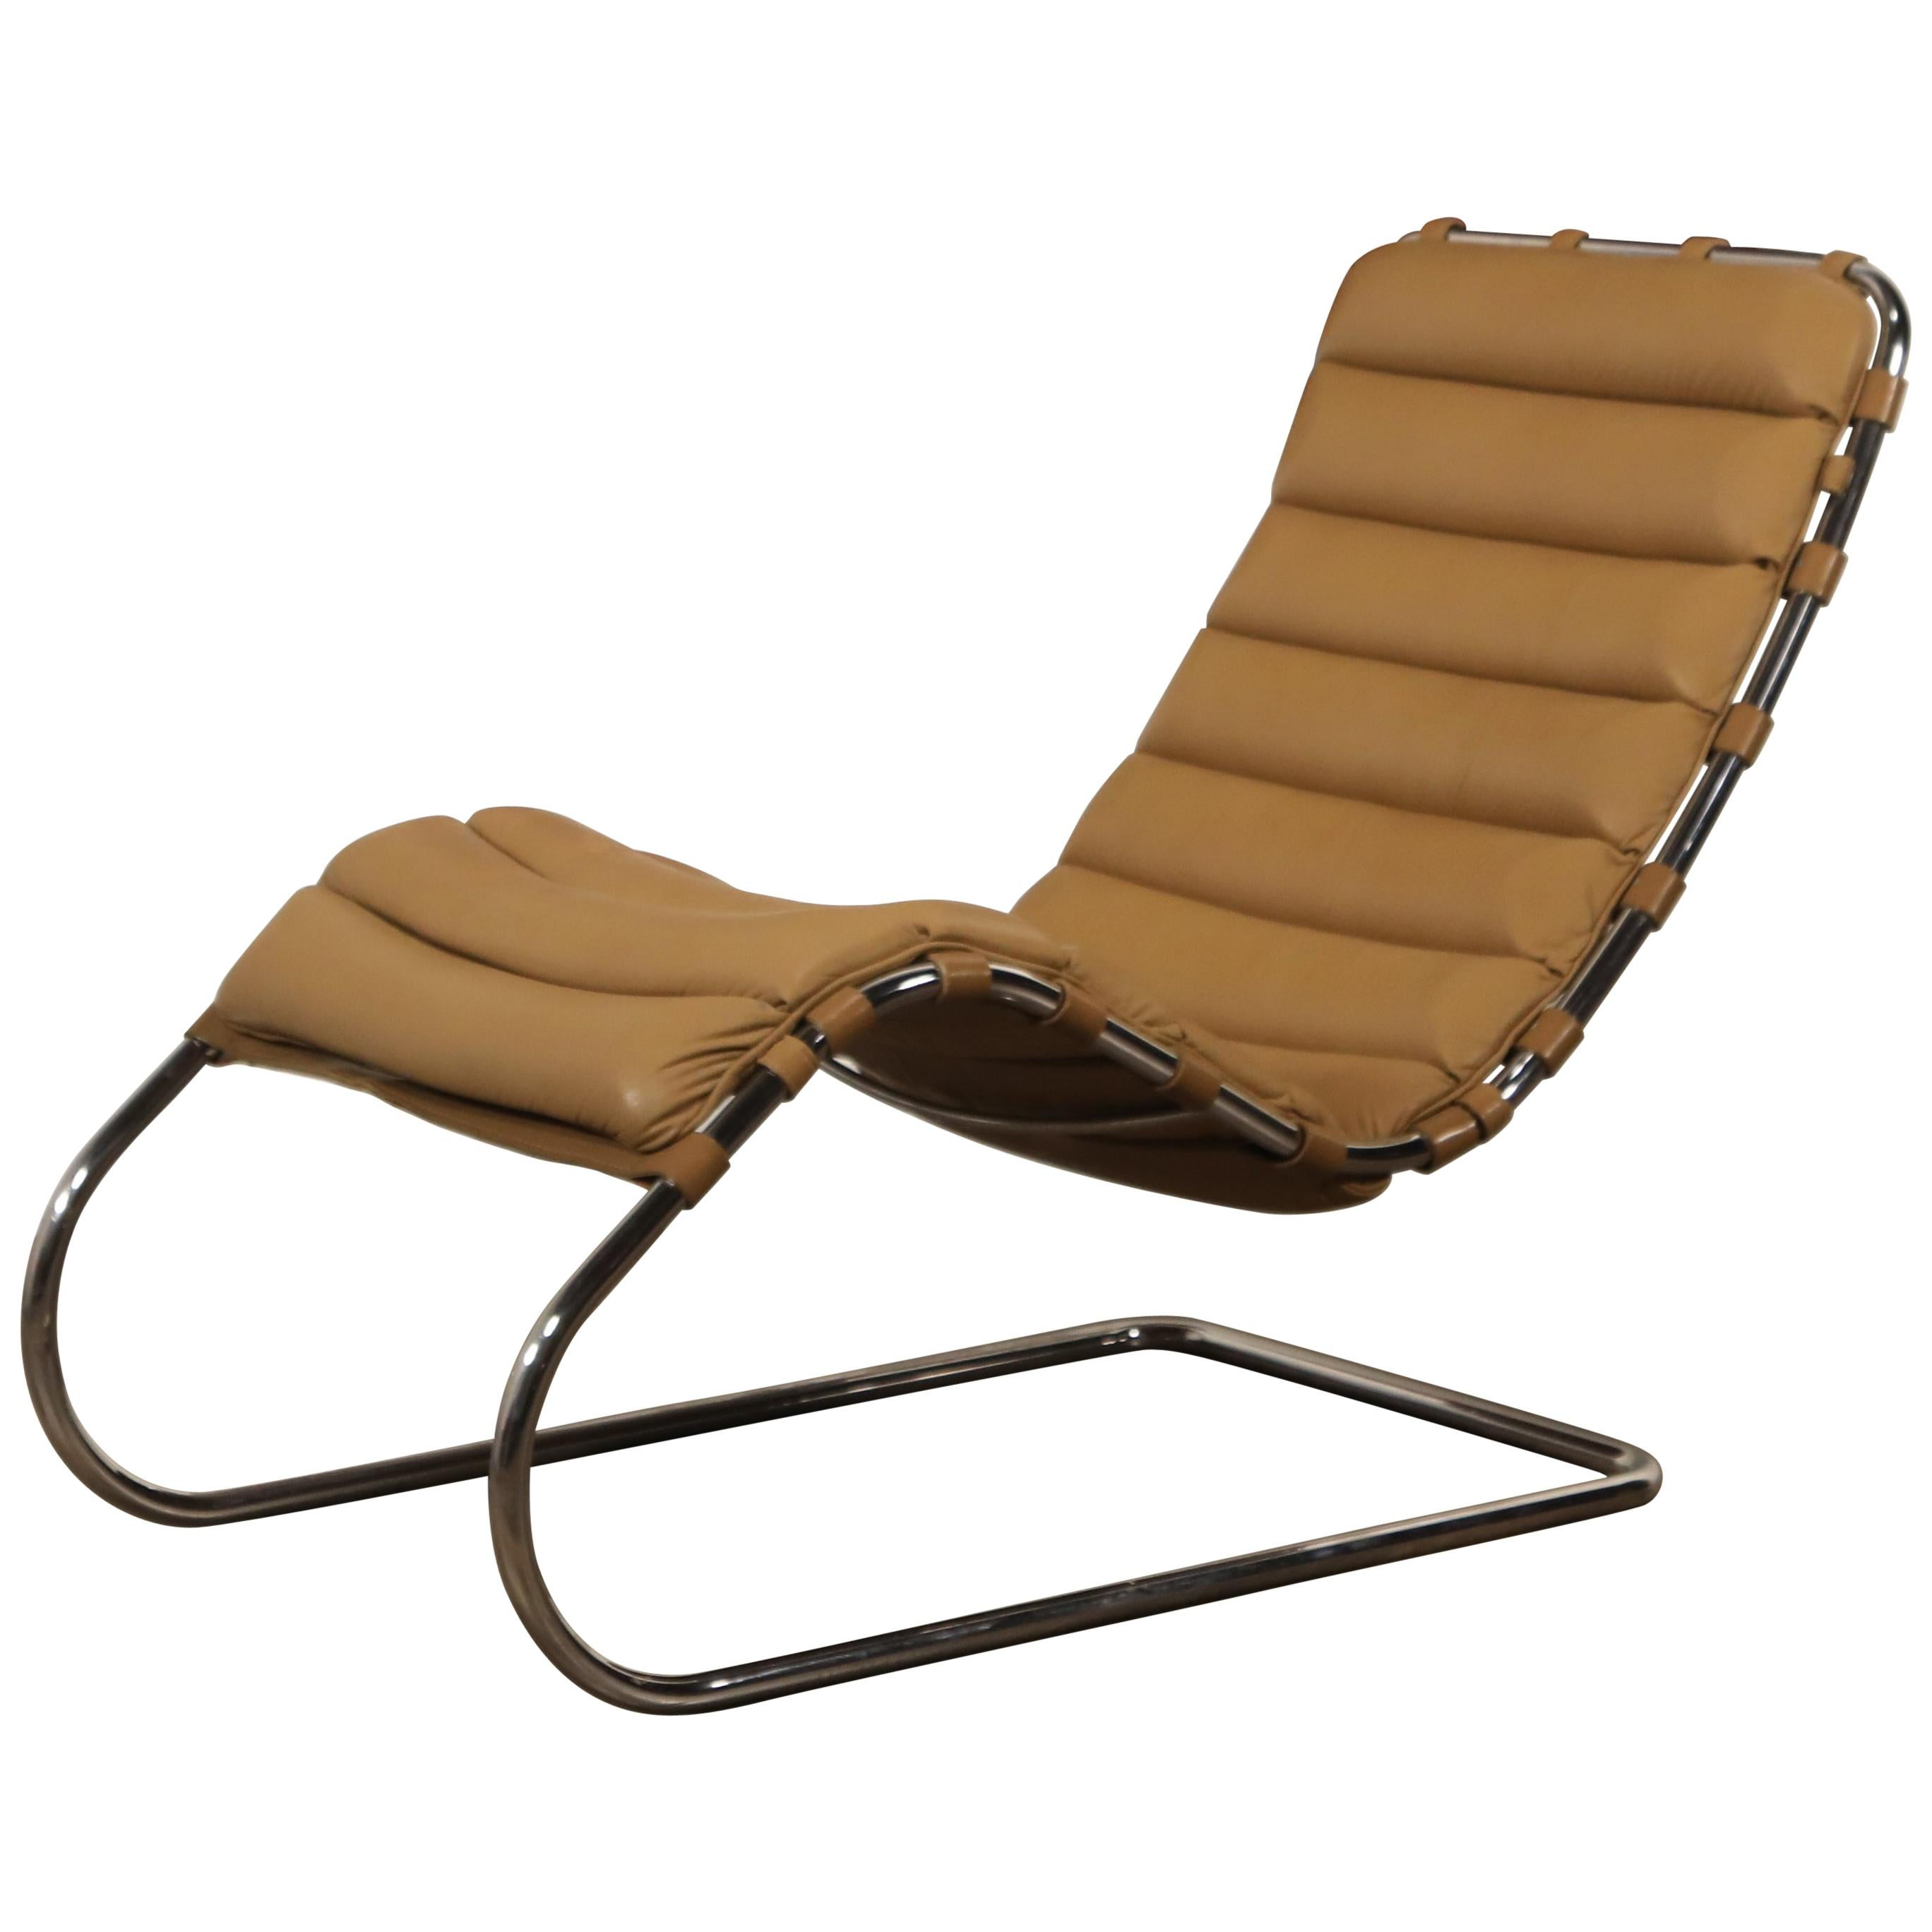 MR Chaise Lounge Chair By Mies Van Der Rohe For Knoll International, Signed  1978 For